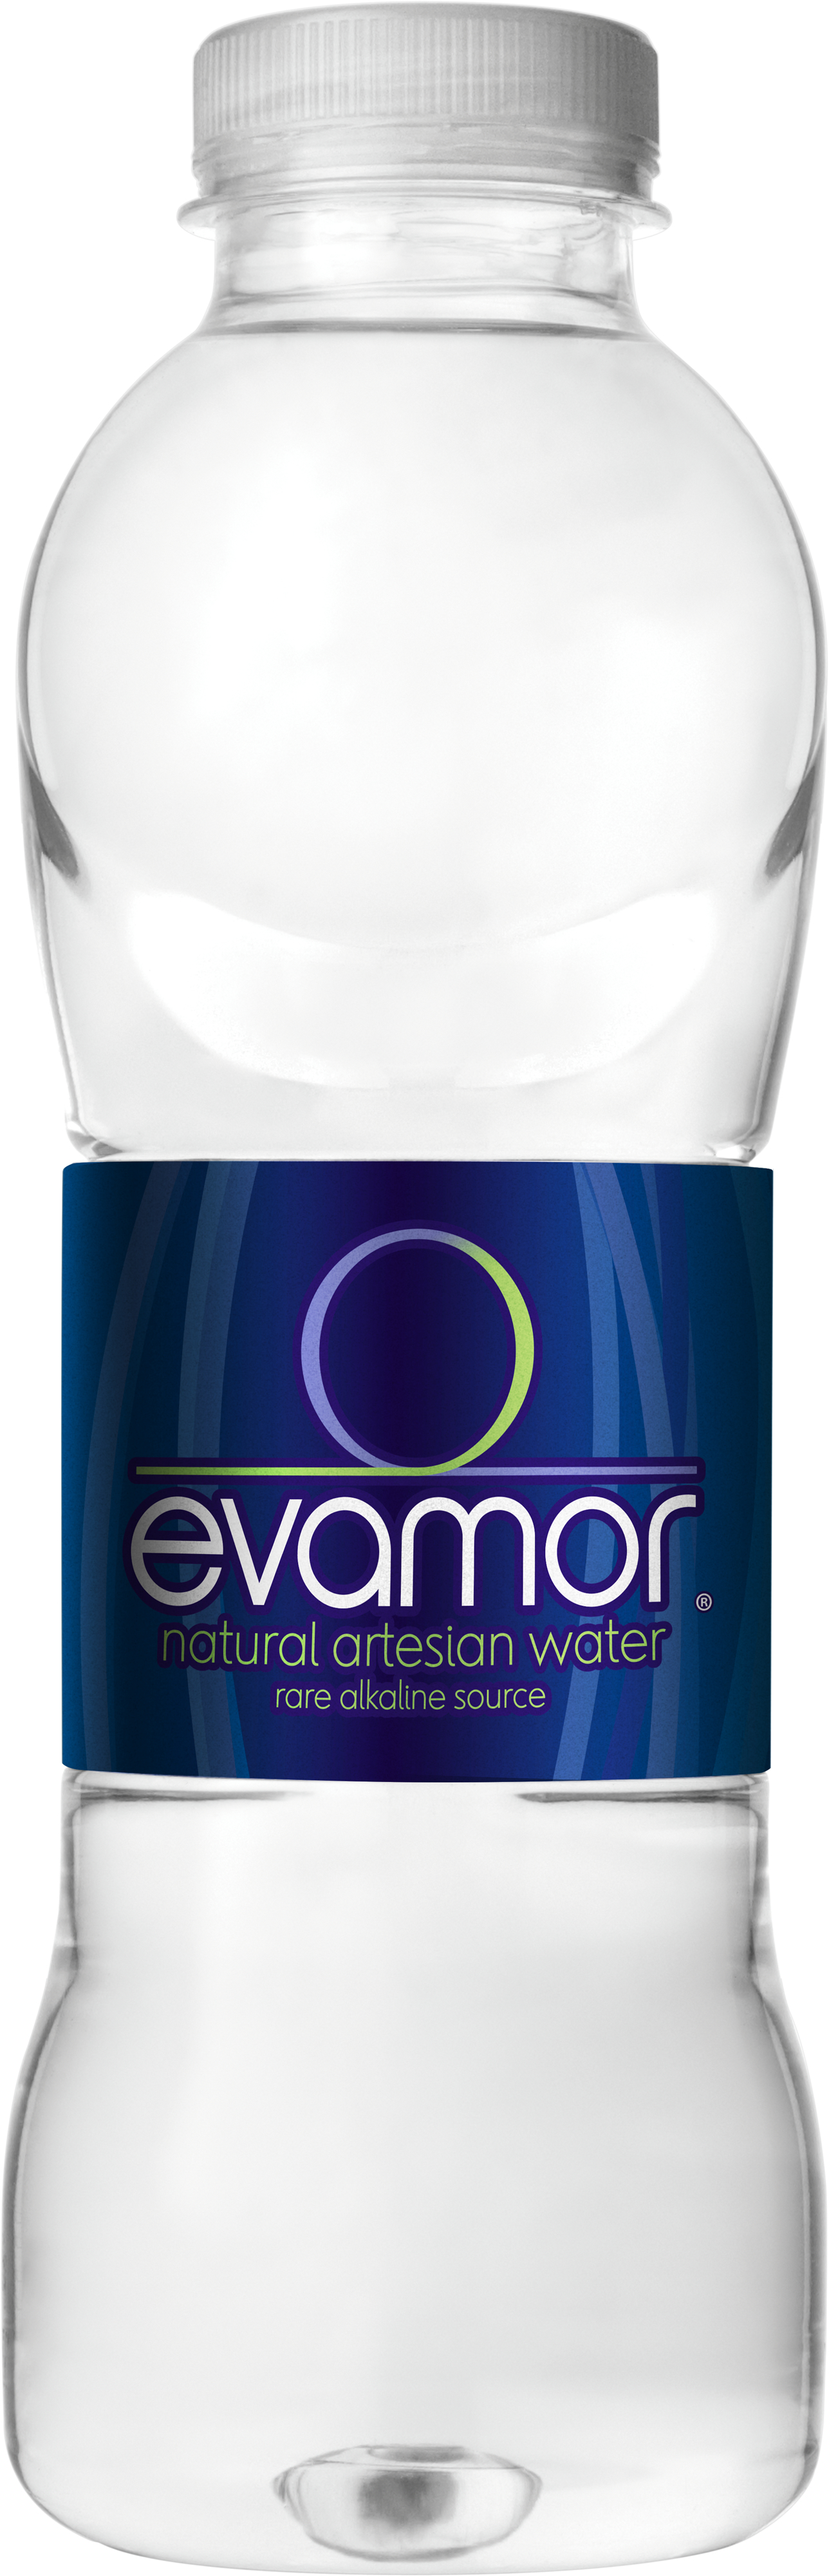 evamor.20oz.bottle2